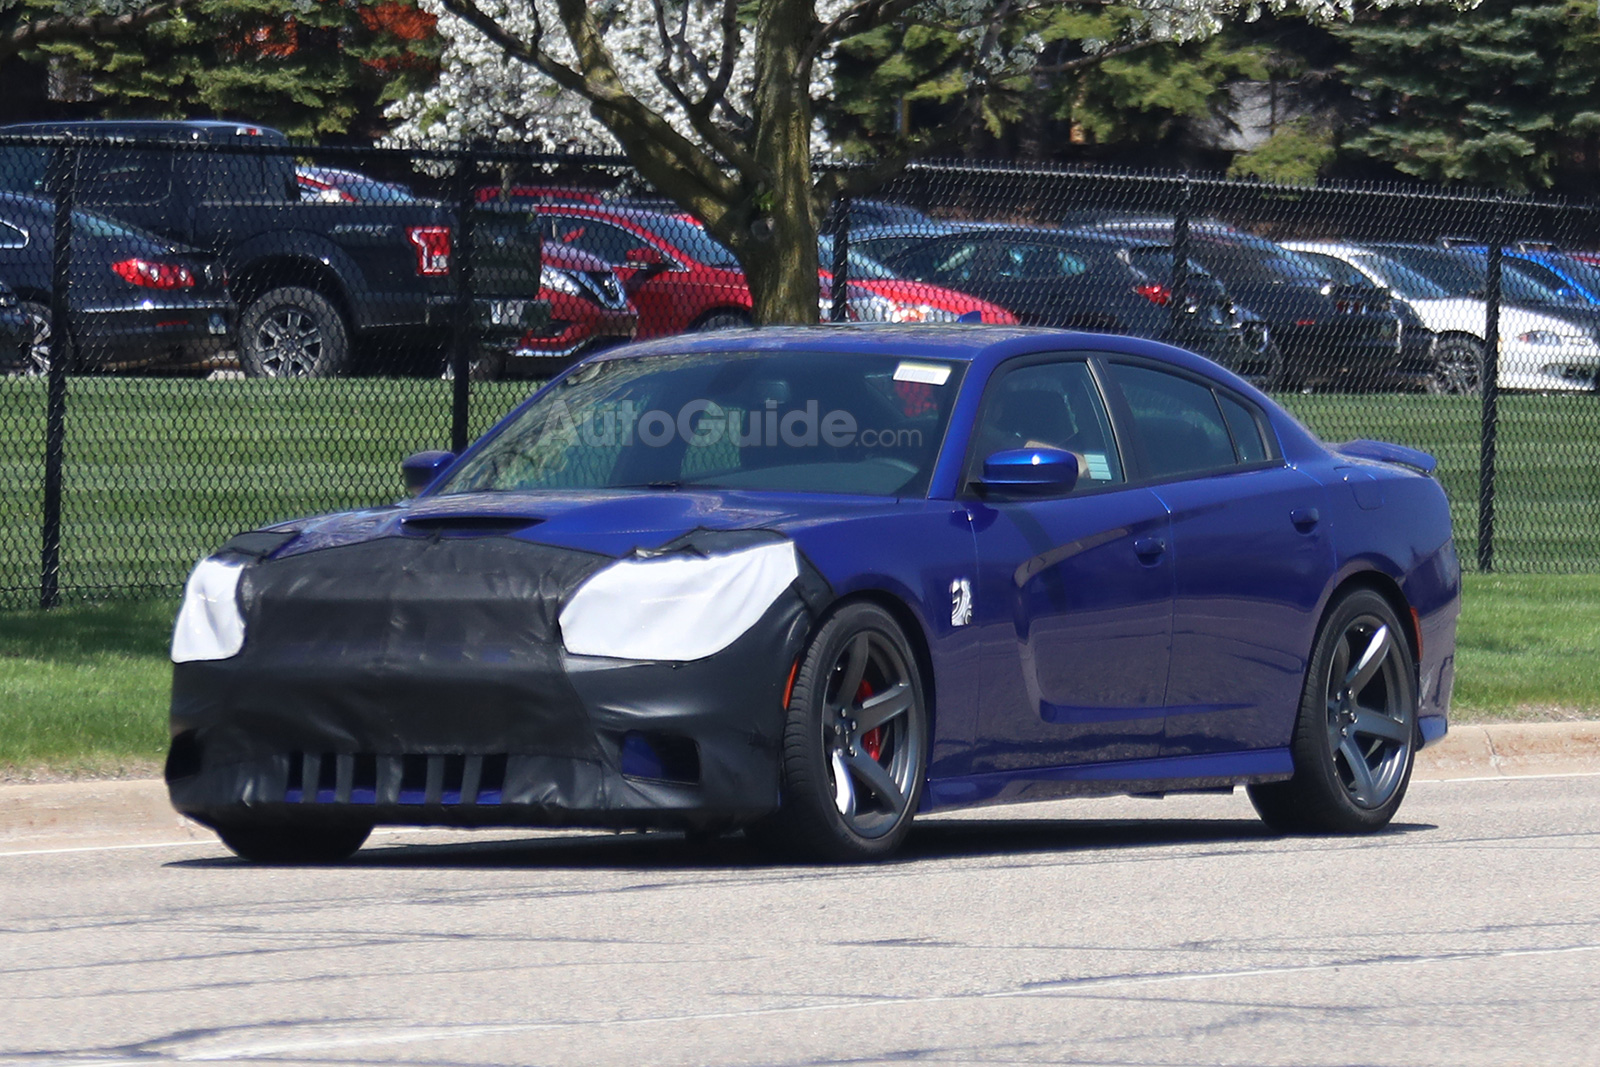 2019 Dodge Charger Hellcat Spied Testing For The First